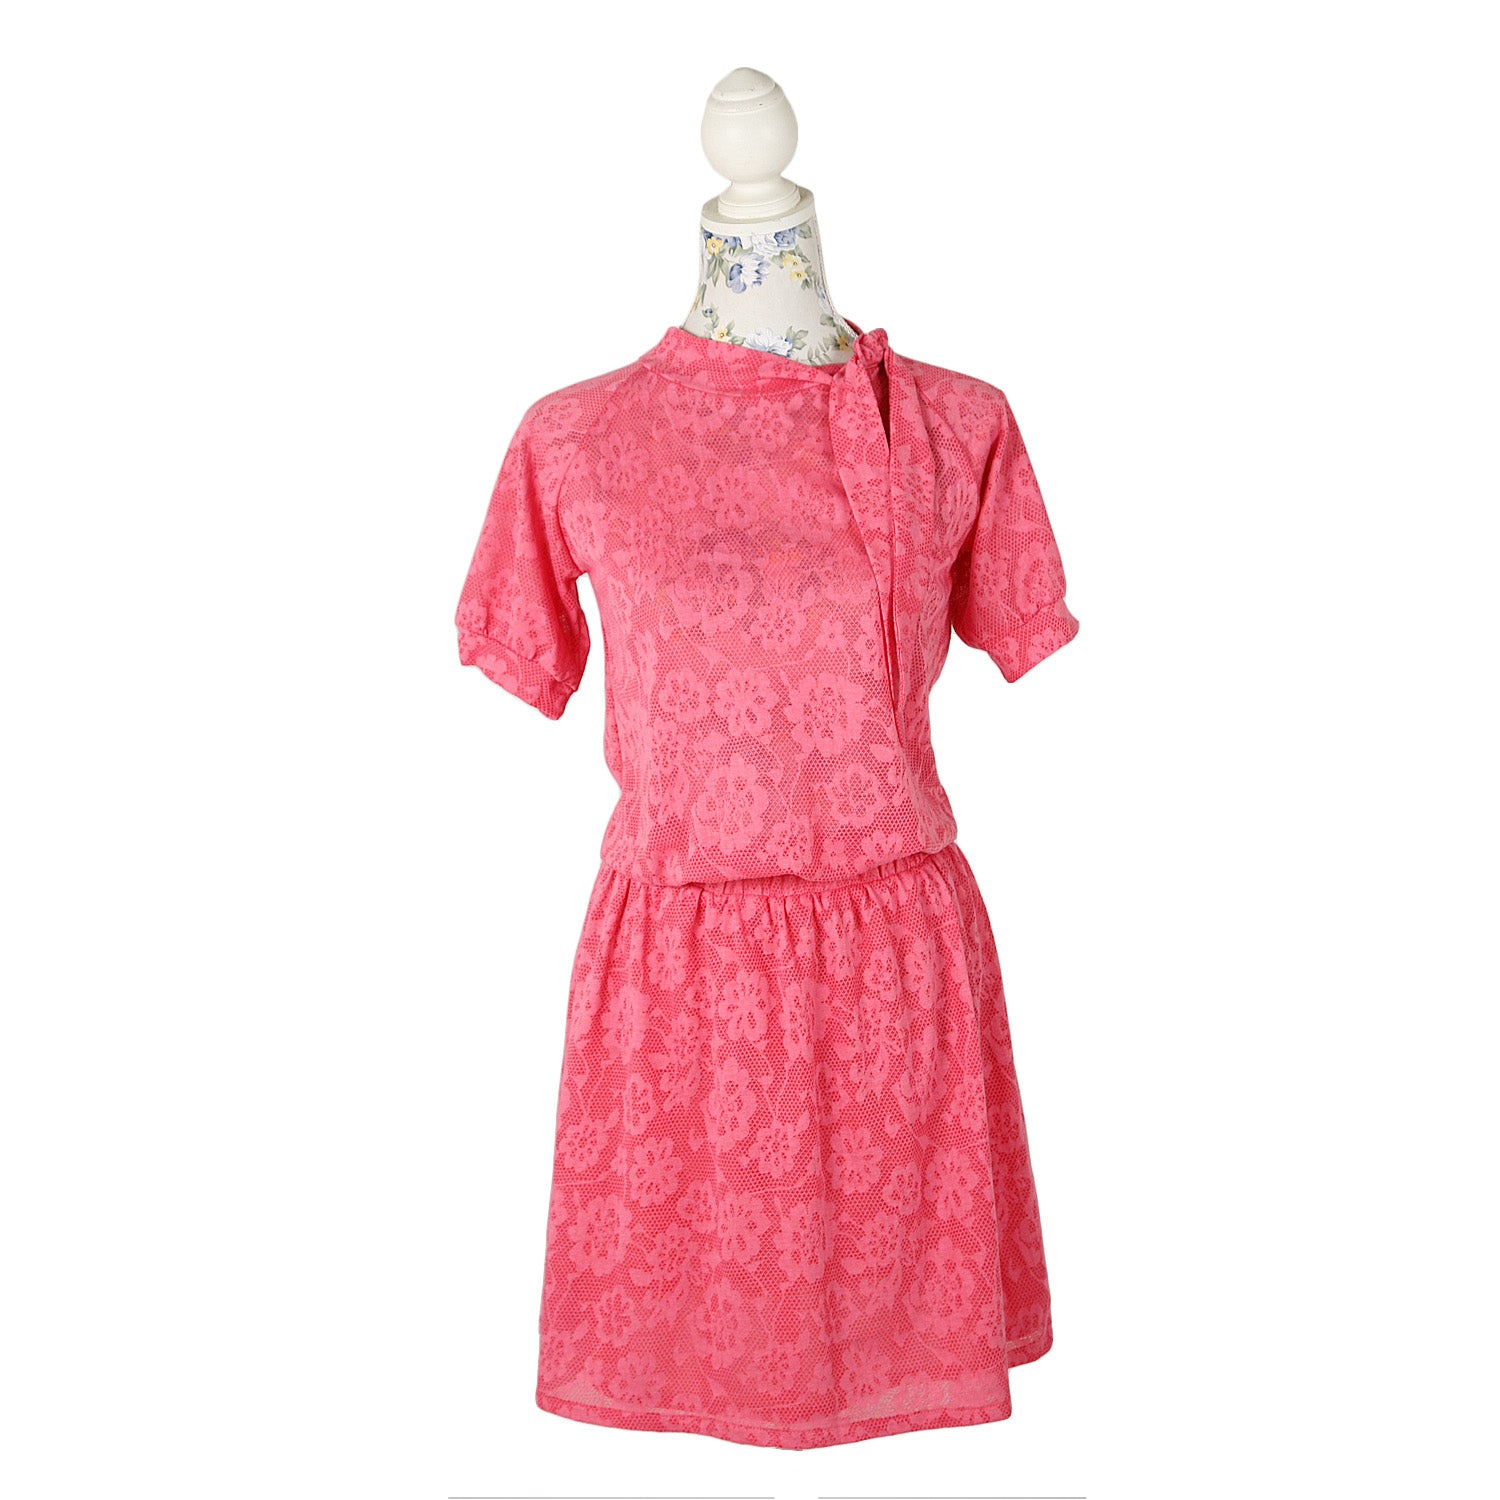 Vestido Cherry Ice Cream